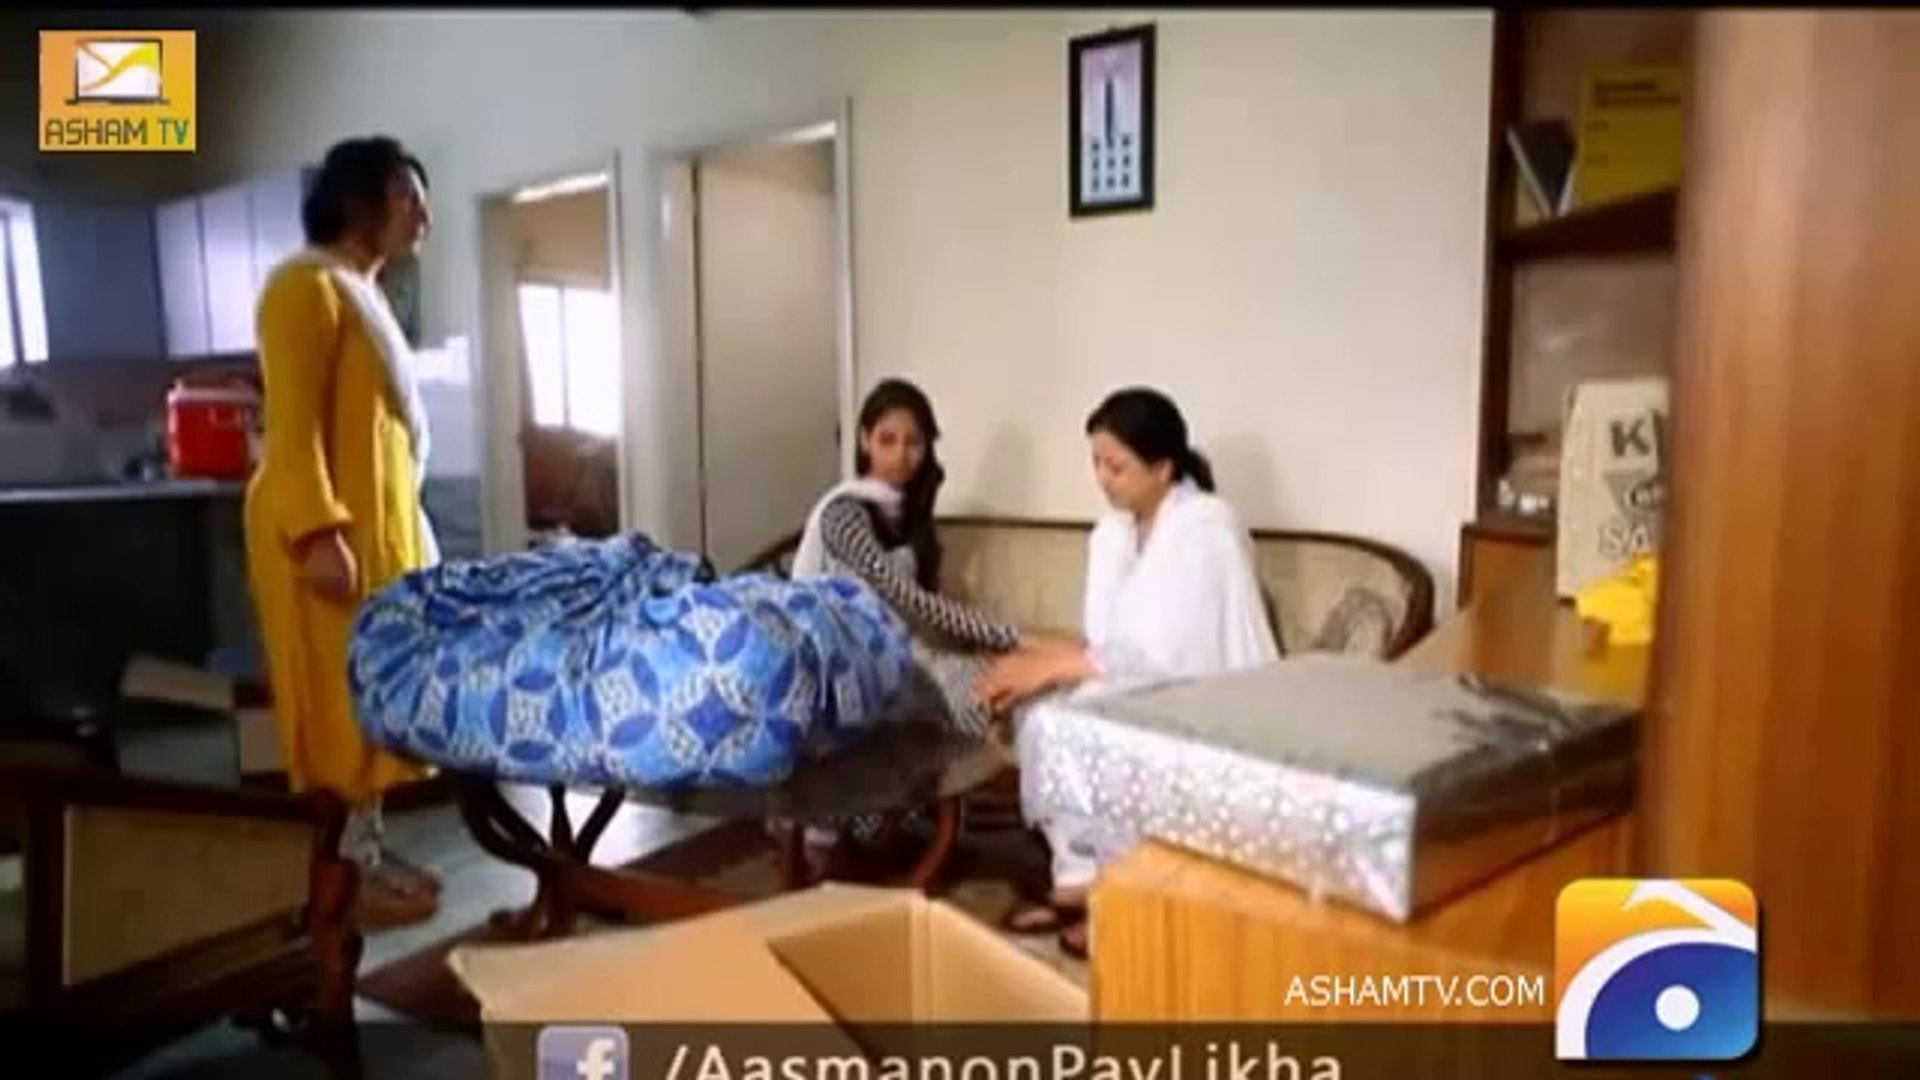 Aasmano Pe Likha Episode 15 Full in HQ - Aasmnao PE Likha 25th December 2013_2